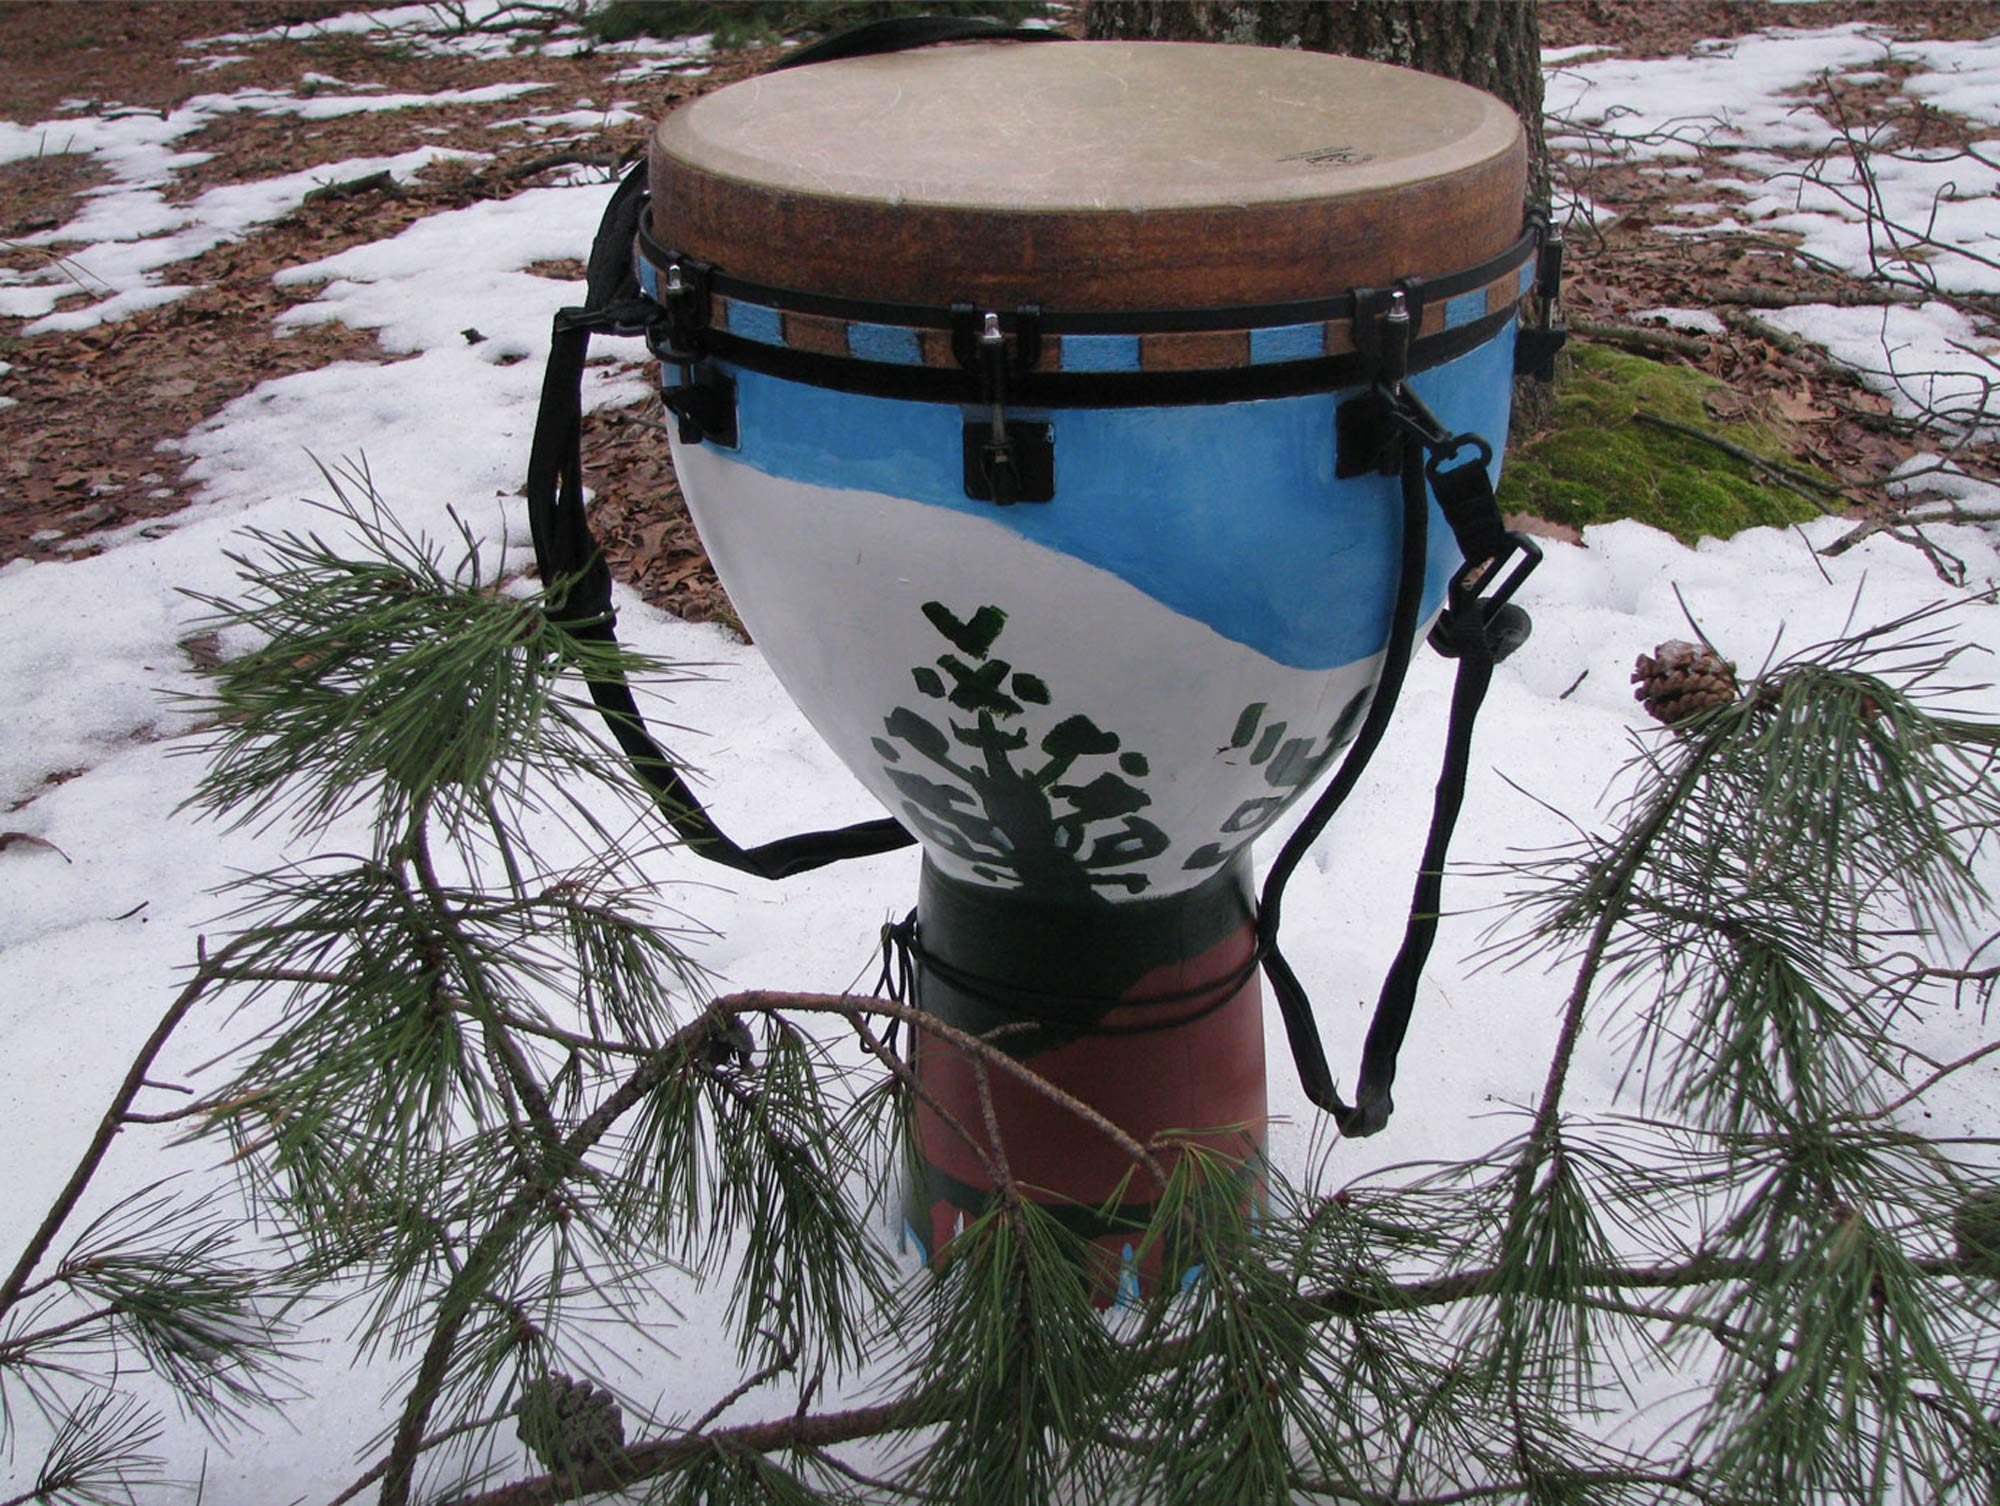 The Cloud People djembe, from Samuel Michael Moskalik.